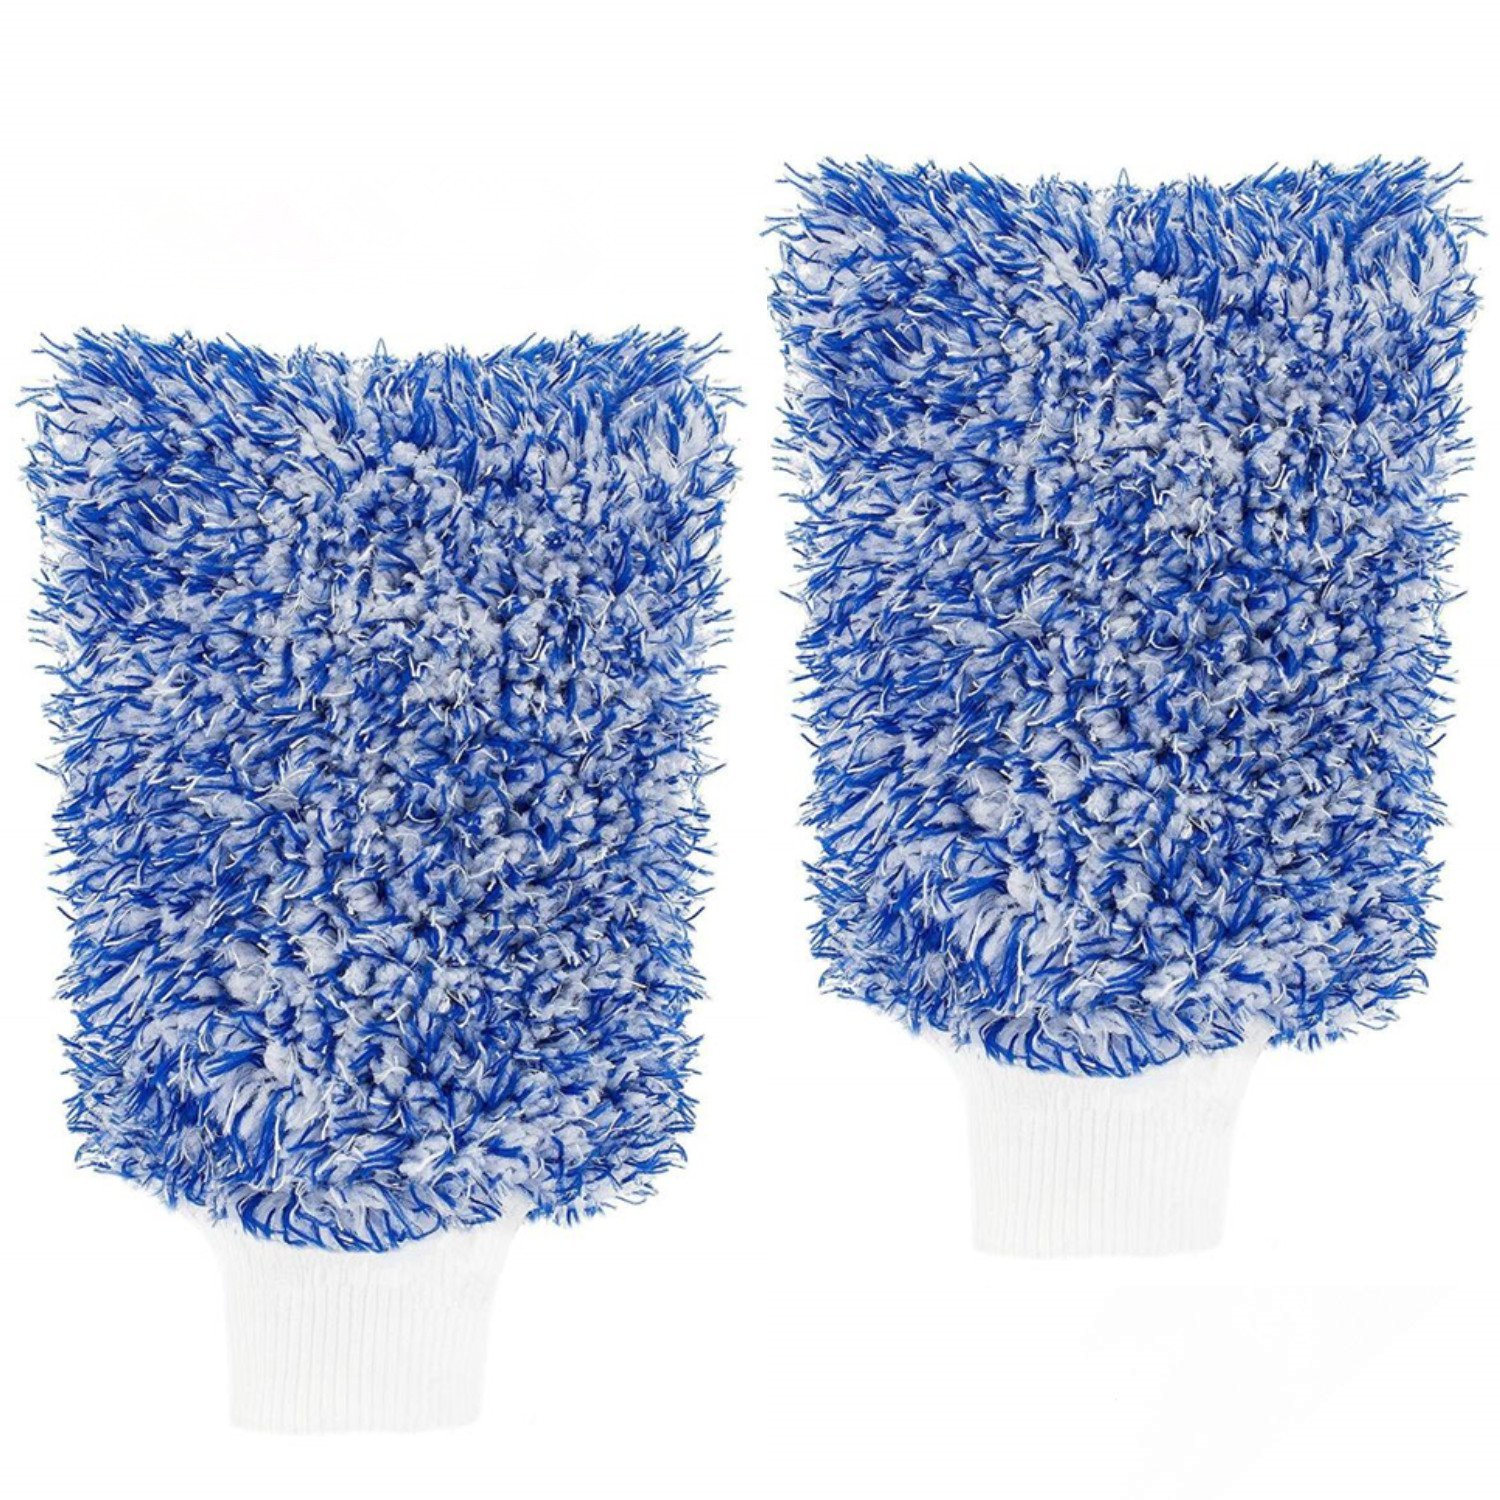 HepiSign Premium Car Wash Mitt Made from The Most Absorbent Microfiber Professional Sponge Car Wash Glove Extra Large Size 2-Pack Sponge for Car Wash